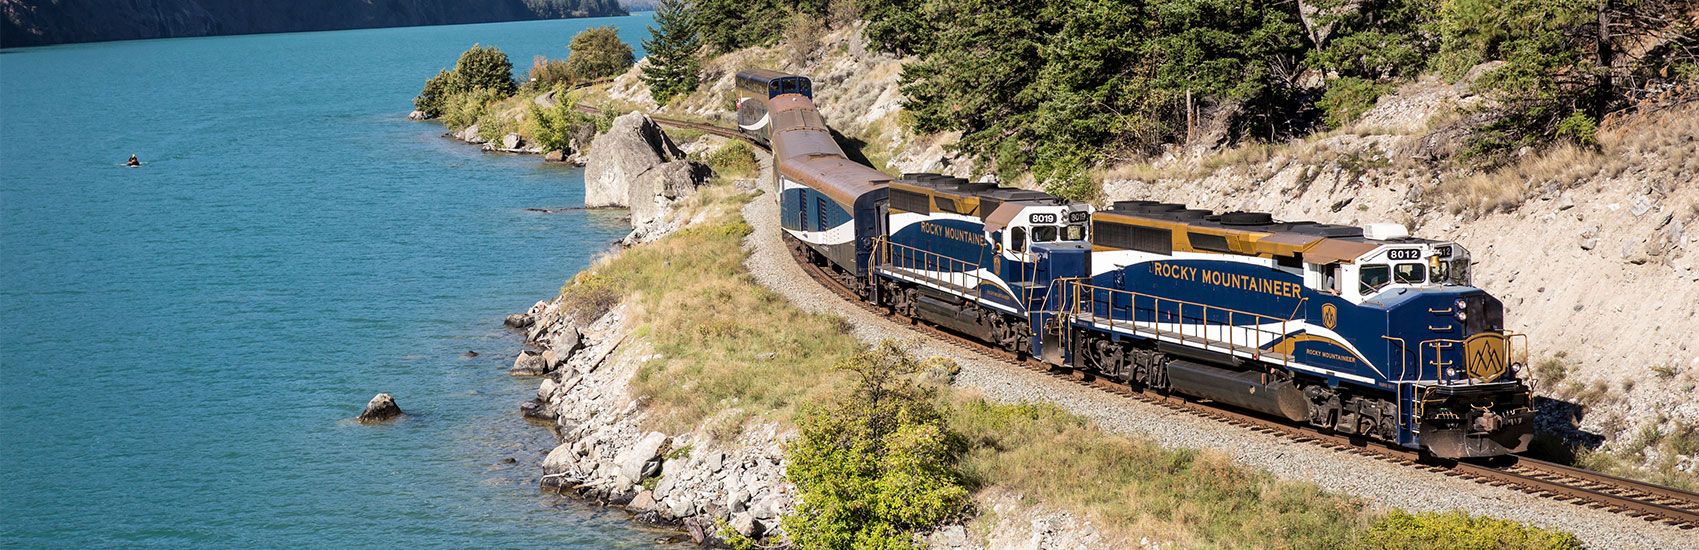 Discover Canada by Train with Rocky Mountaineer 2